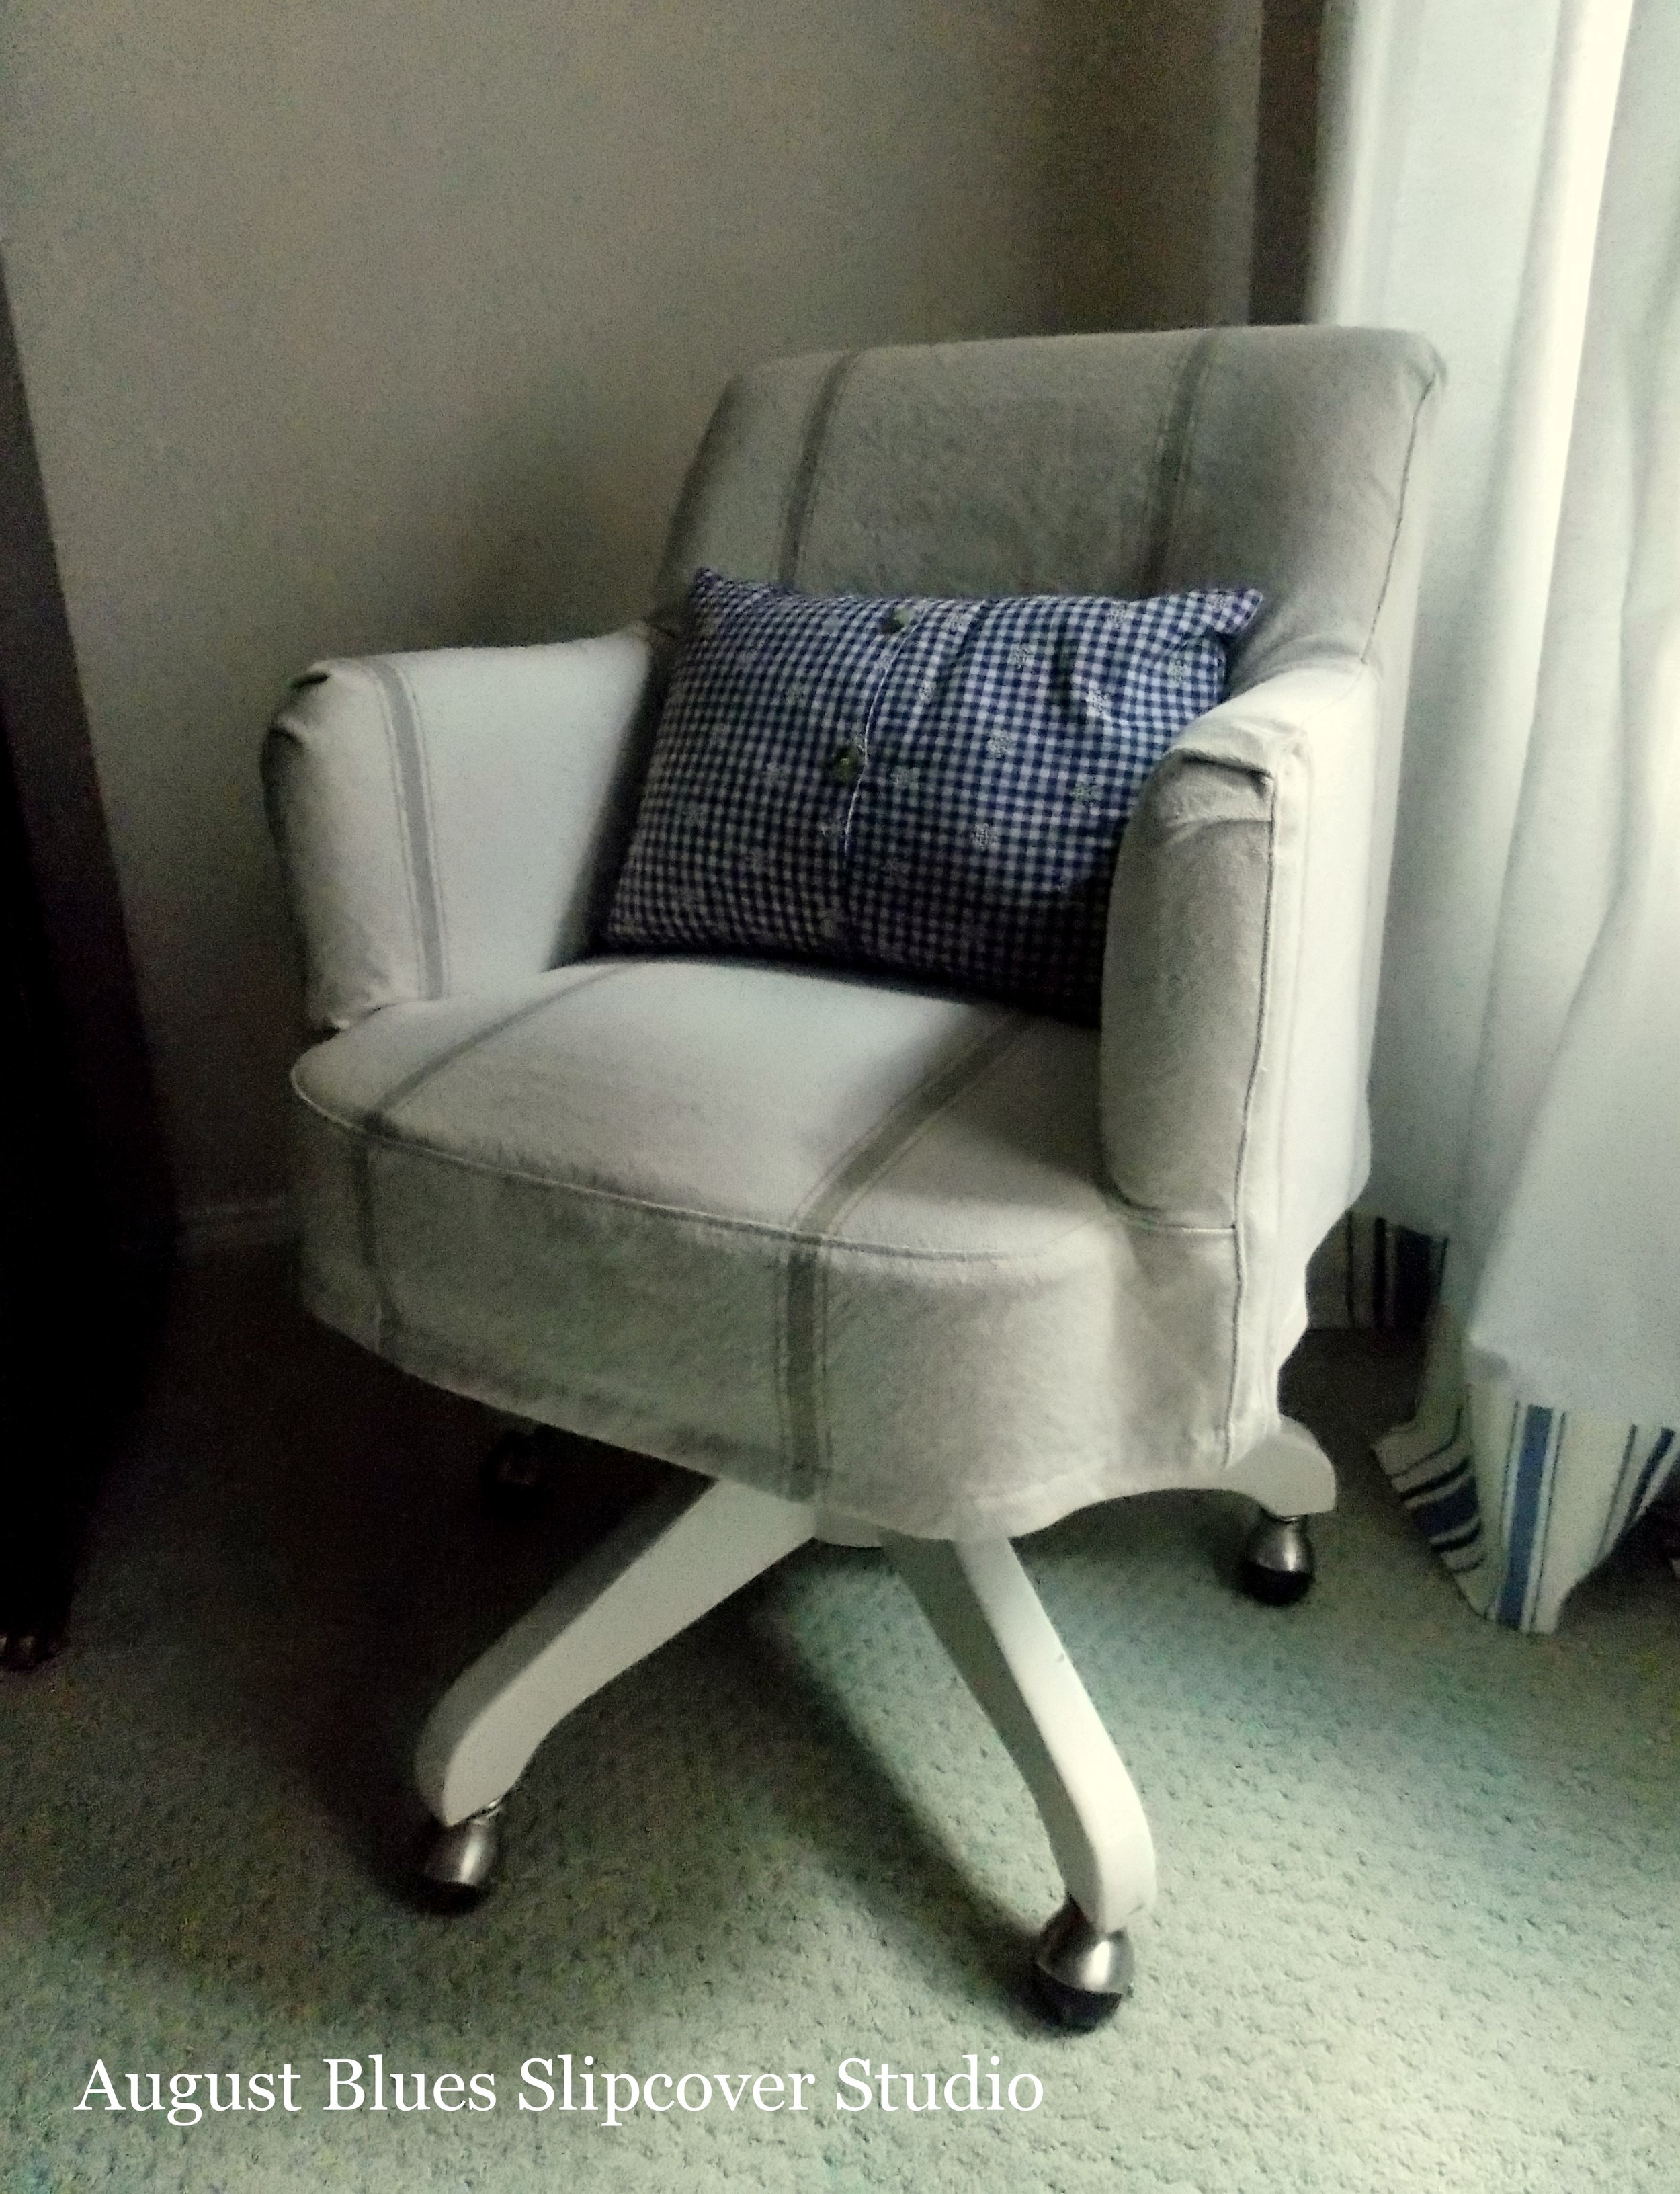 Grain Sack Chair Grain Sack Desk Chair Slipcover August Blues